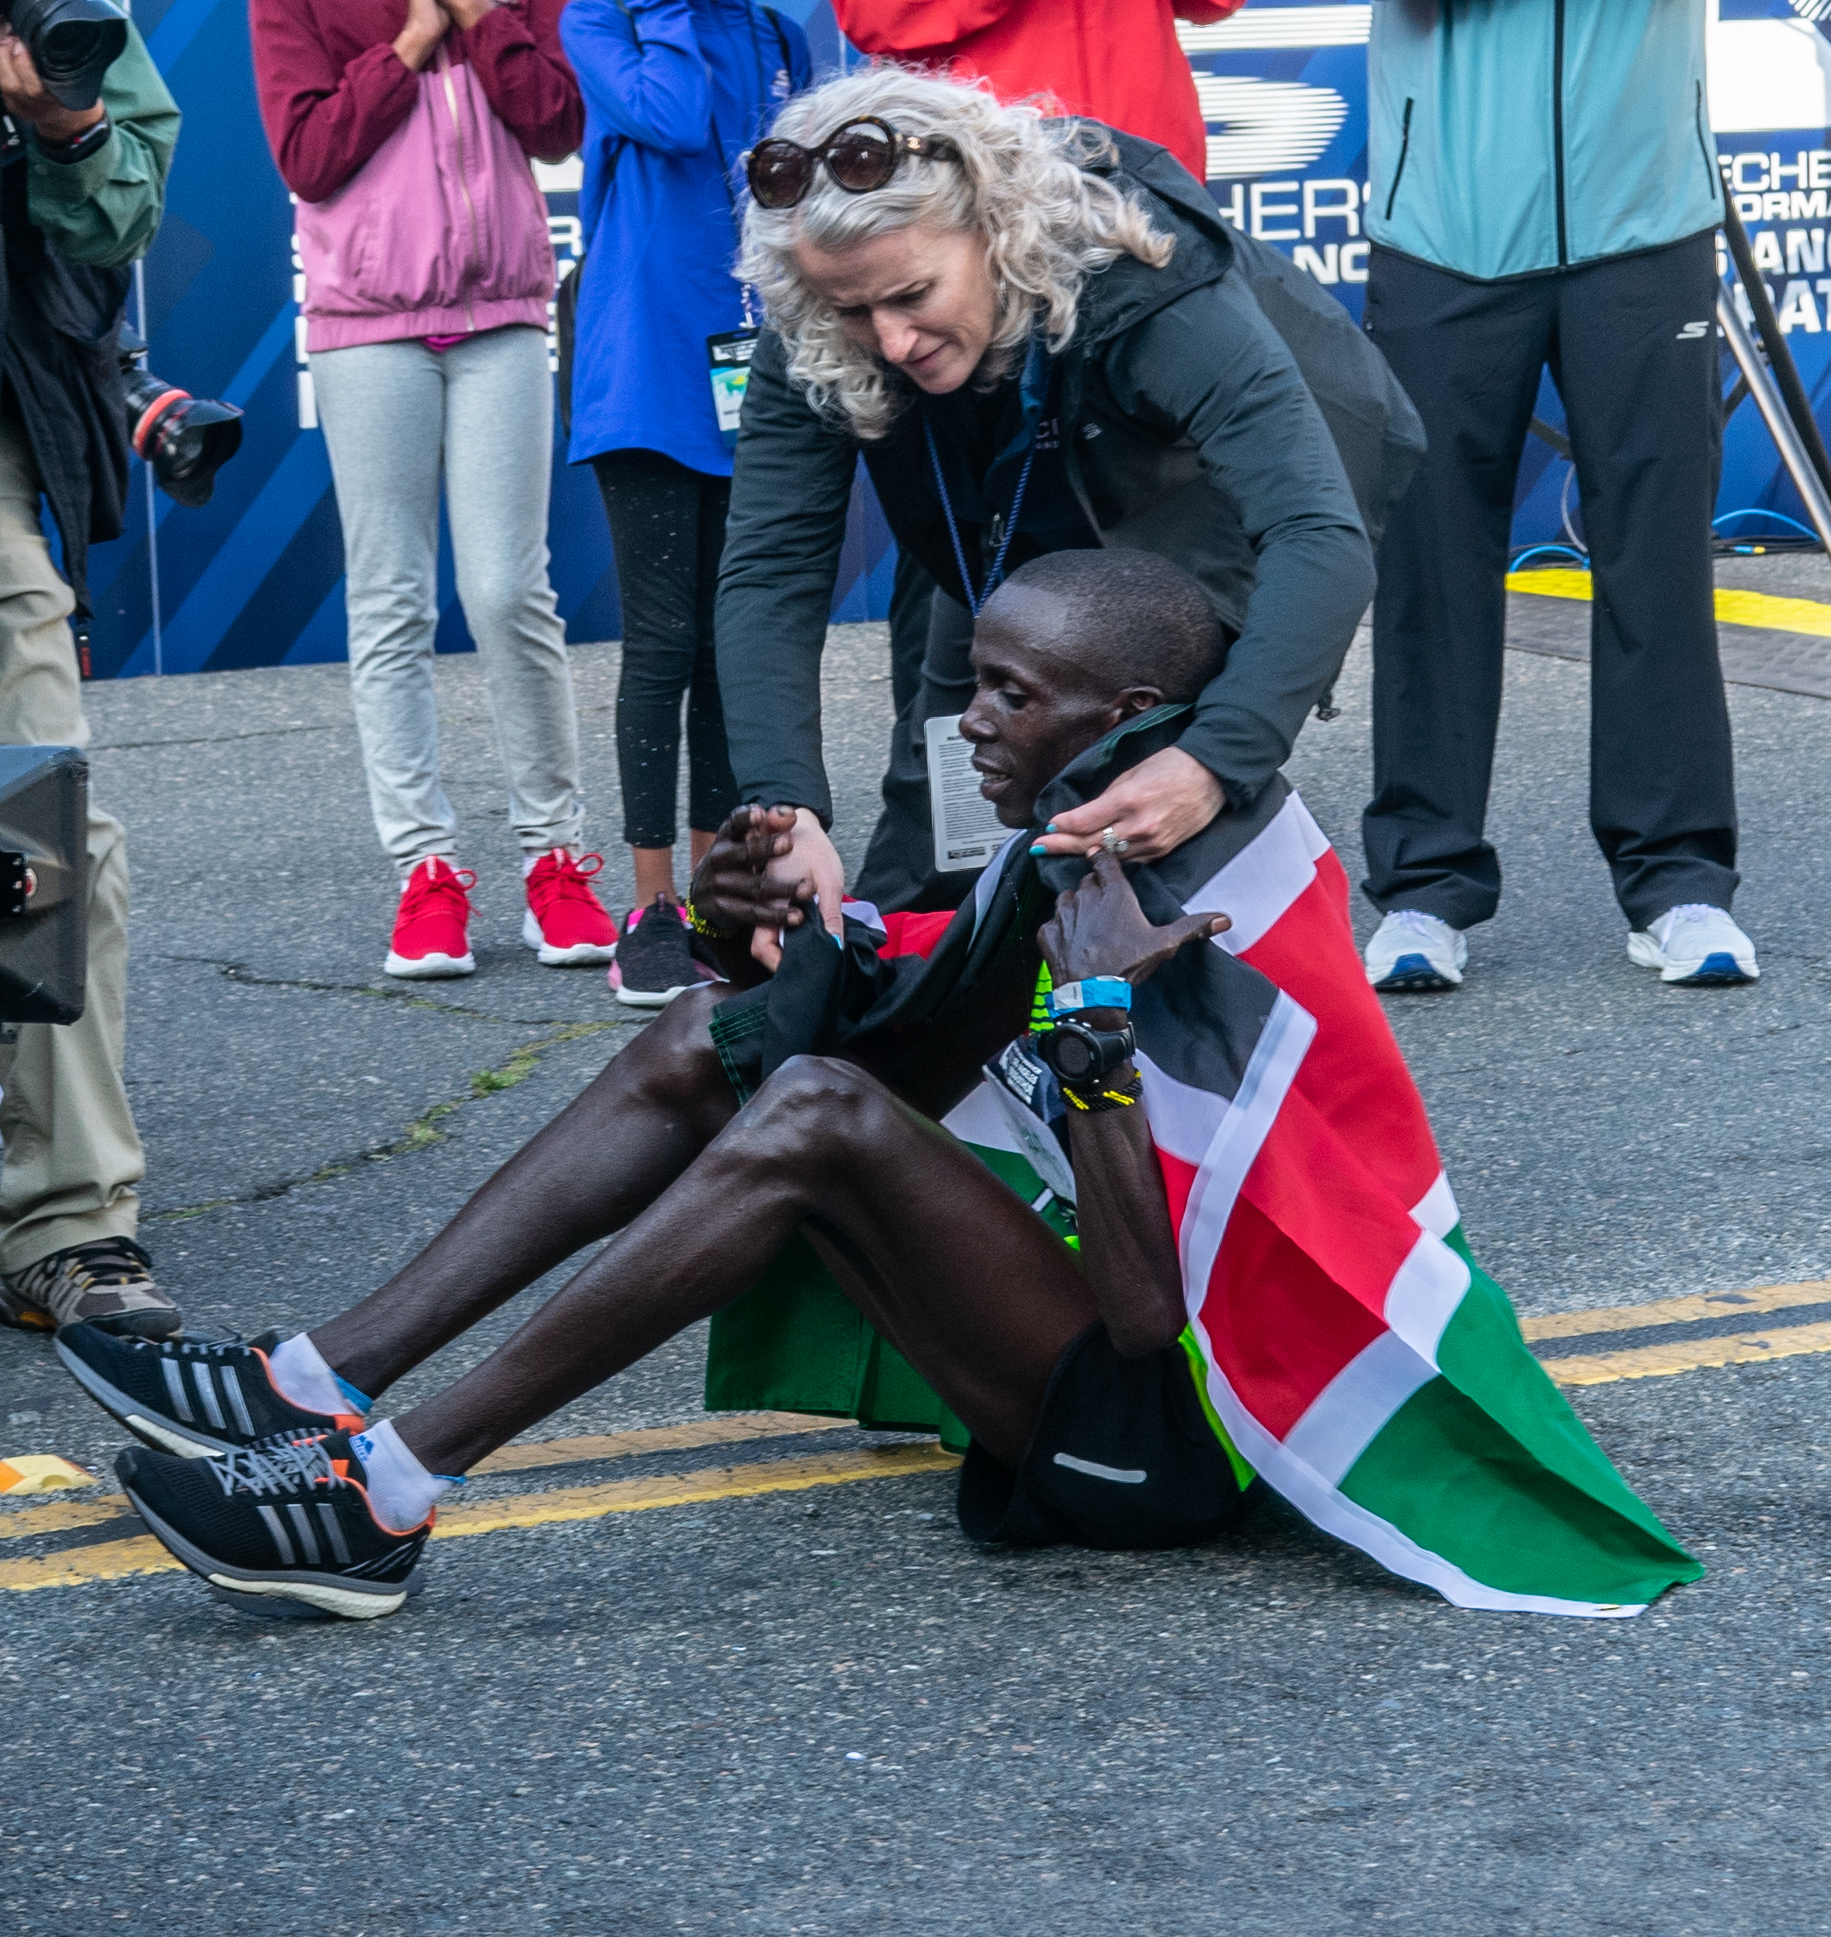 Tracey Russell, CEO of Conqur Endurance Group, placing the Kenyan flag on Los Angeles Marathon winner Elisha Barno as he is resting on Ocean Ave, on Sunday March 24th 2019, in Santa Monica Calif. (Conner Savage Corsair Staff).